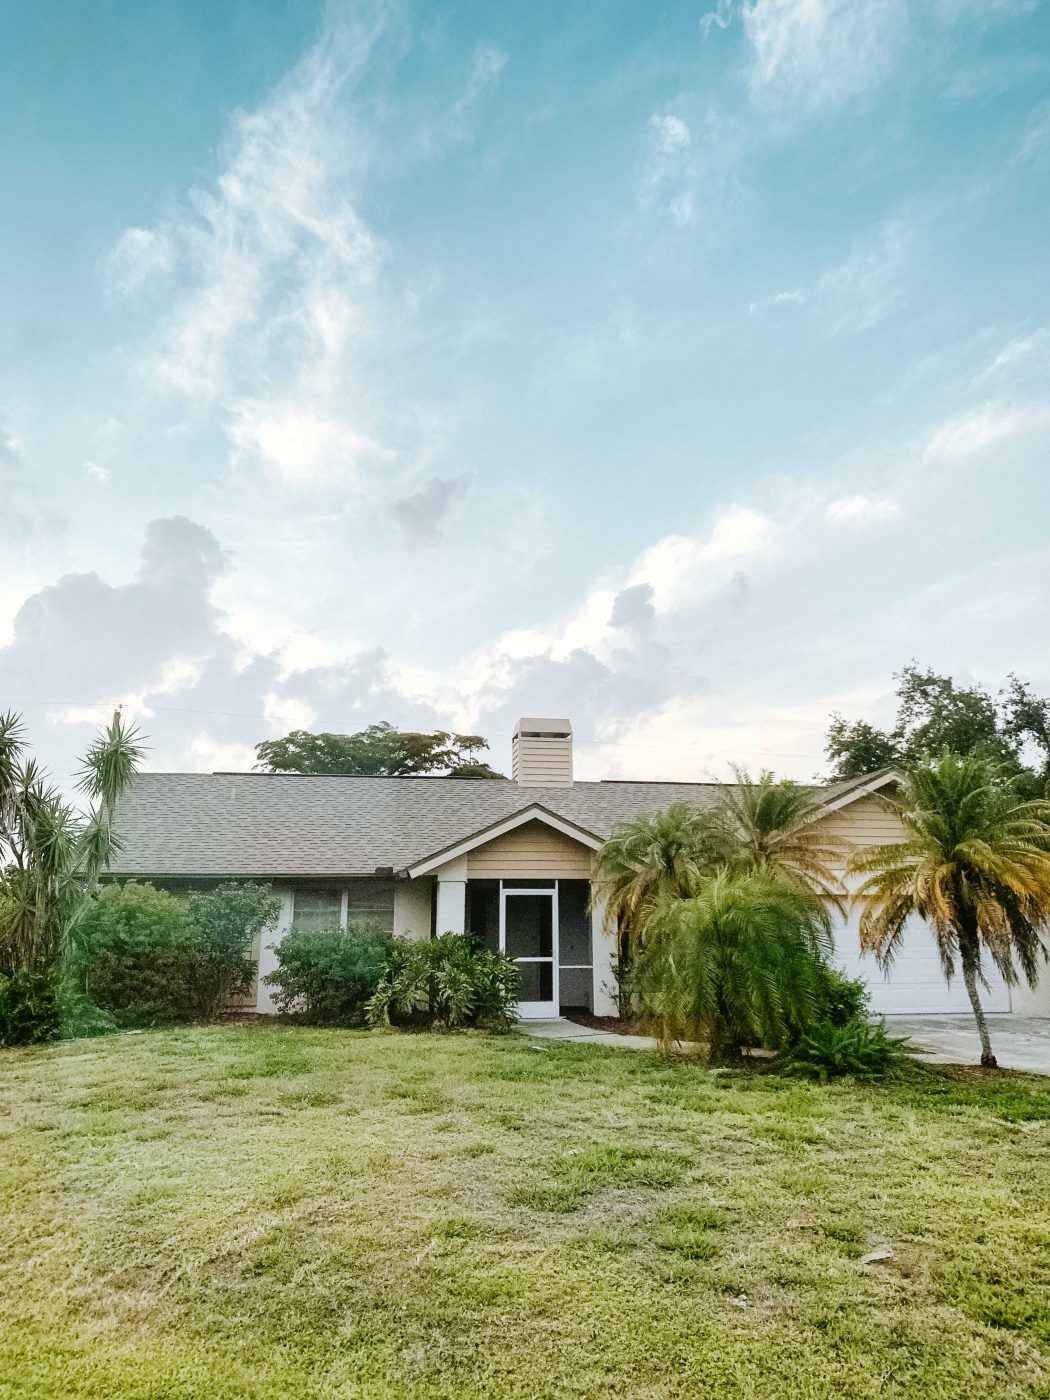 We Bought A House - Sweet Teal